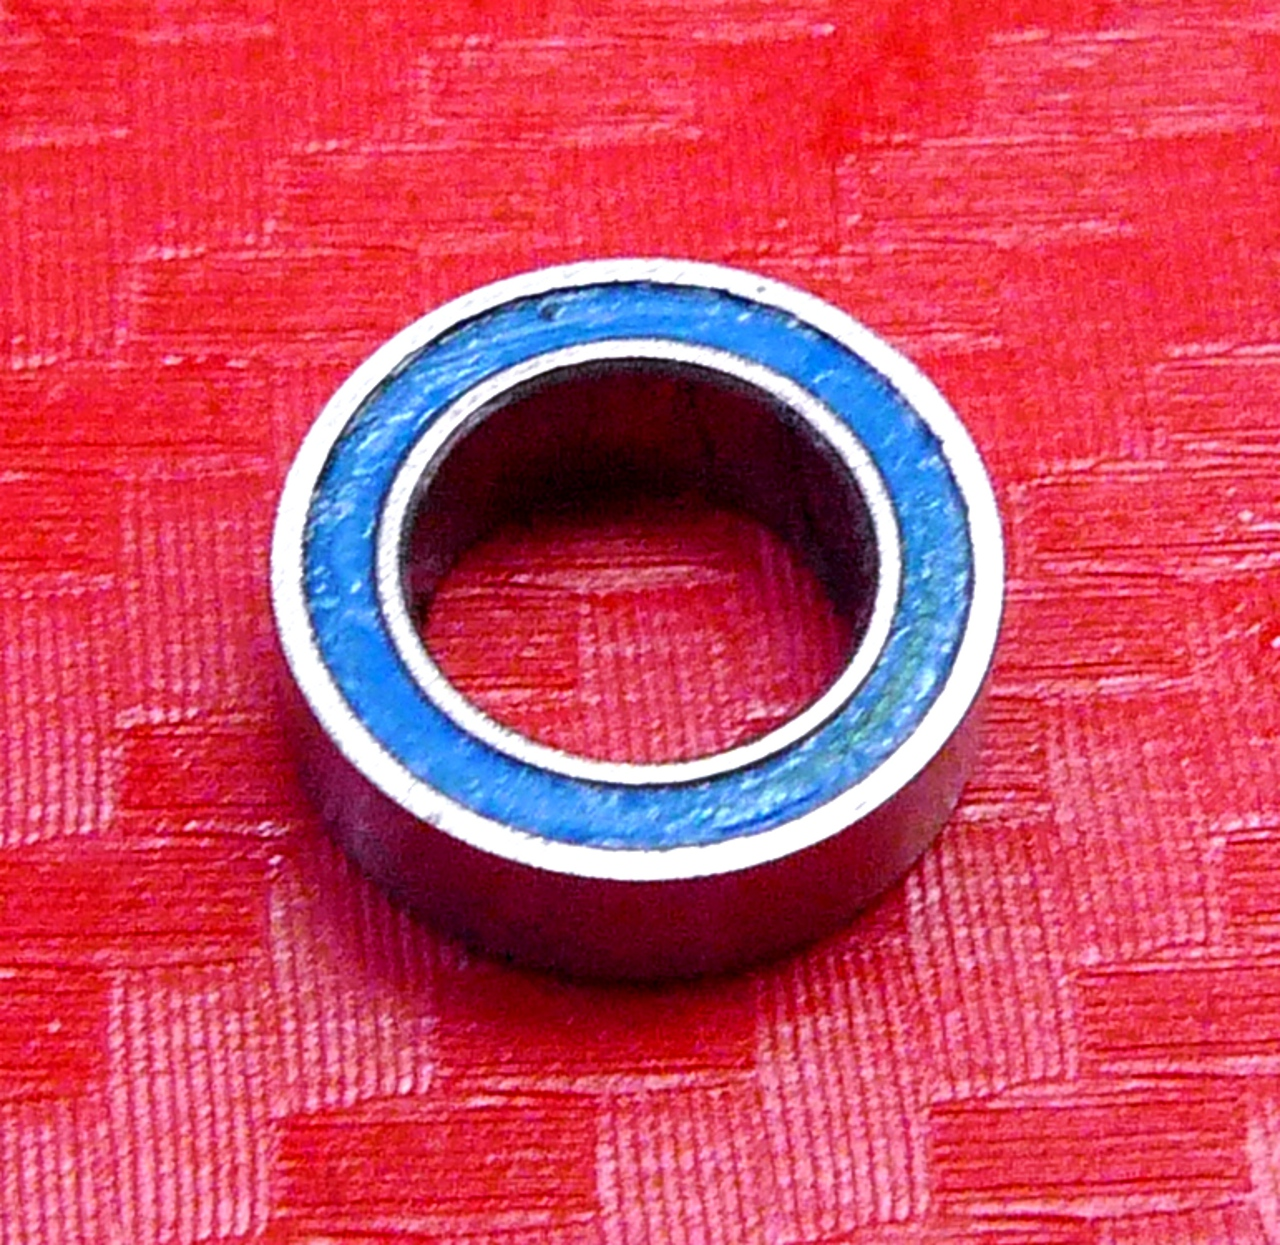 ABEC-3 Rubber Sealed Ball Bearing BLUE MR105RS 5 PCS 5x10x3 mm MR105-2RS//W3